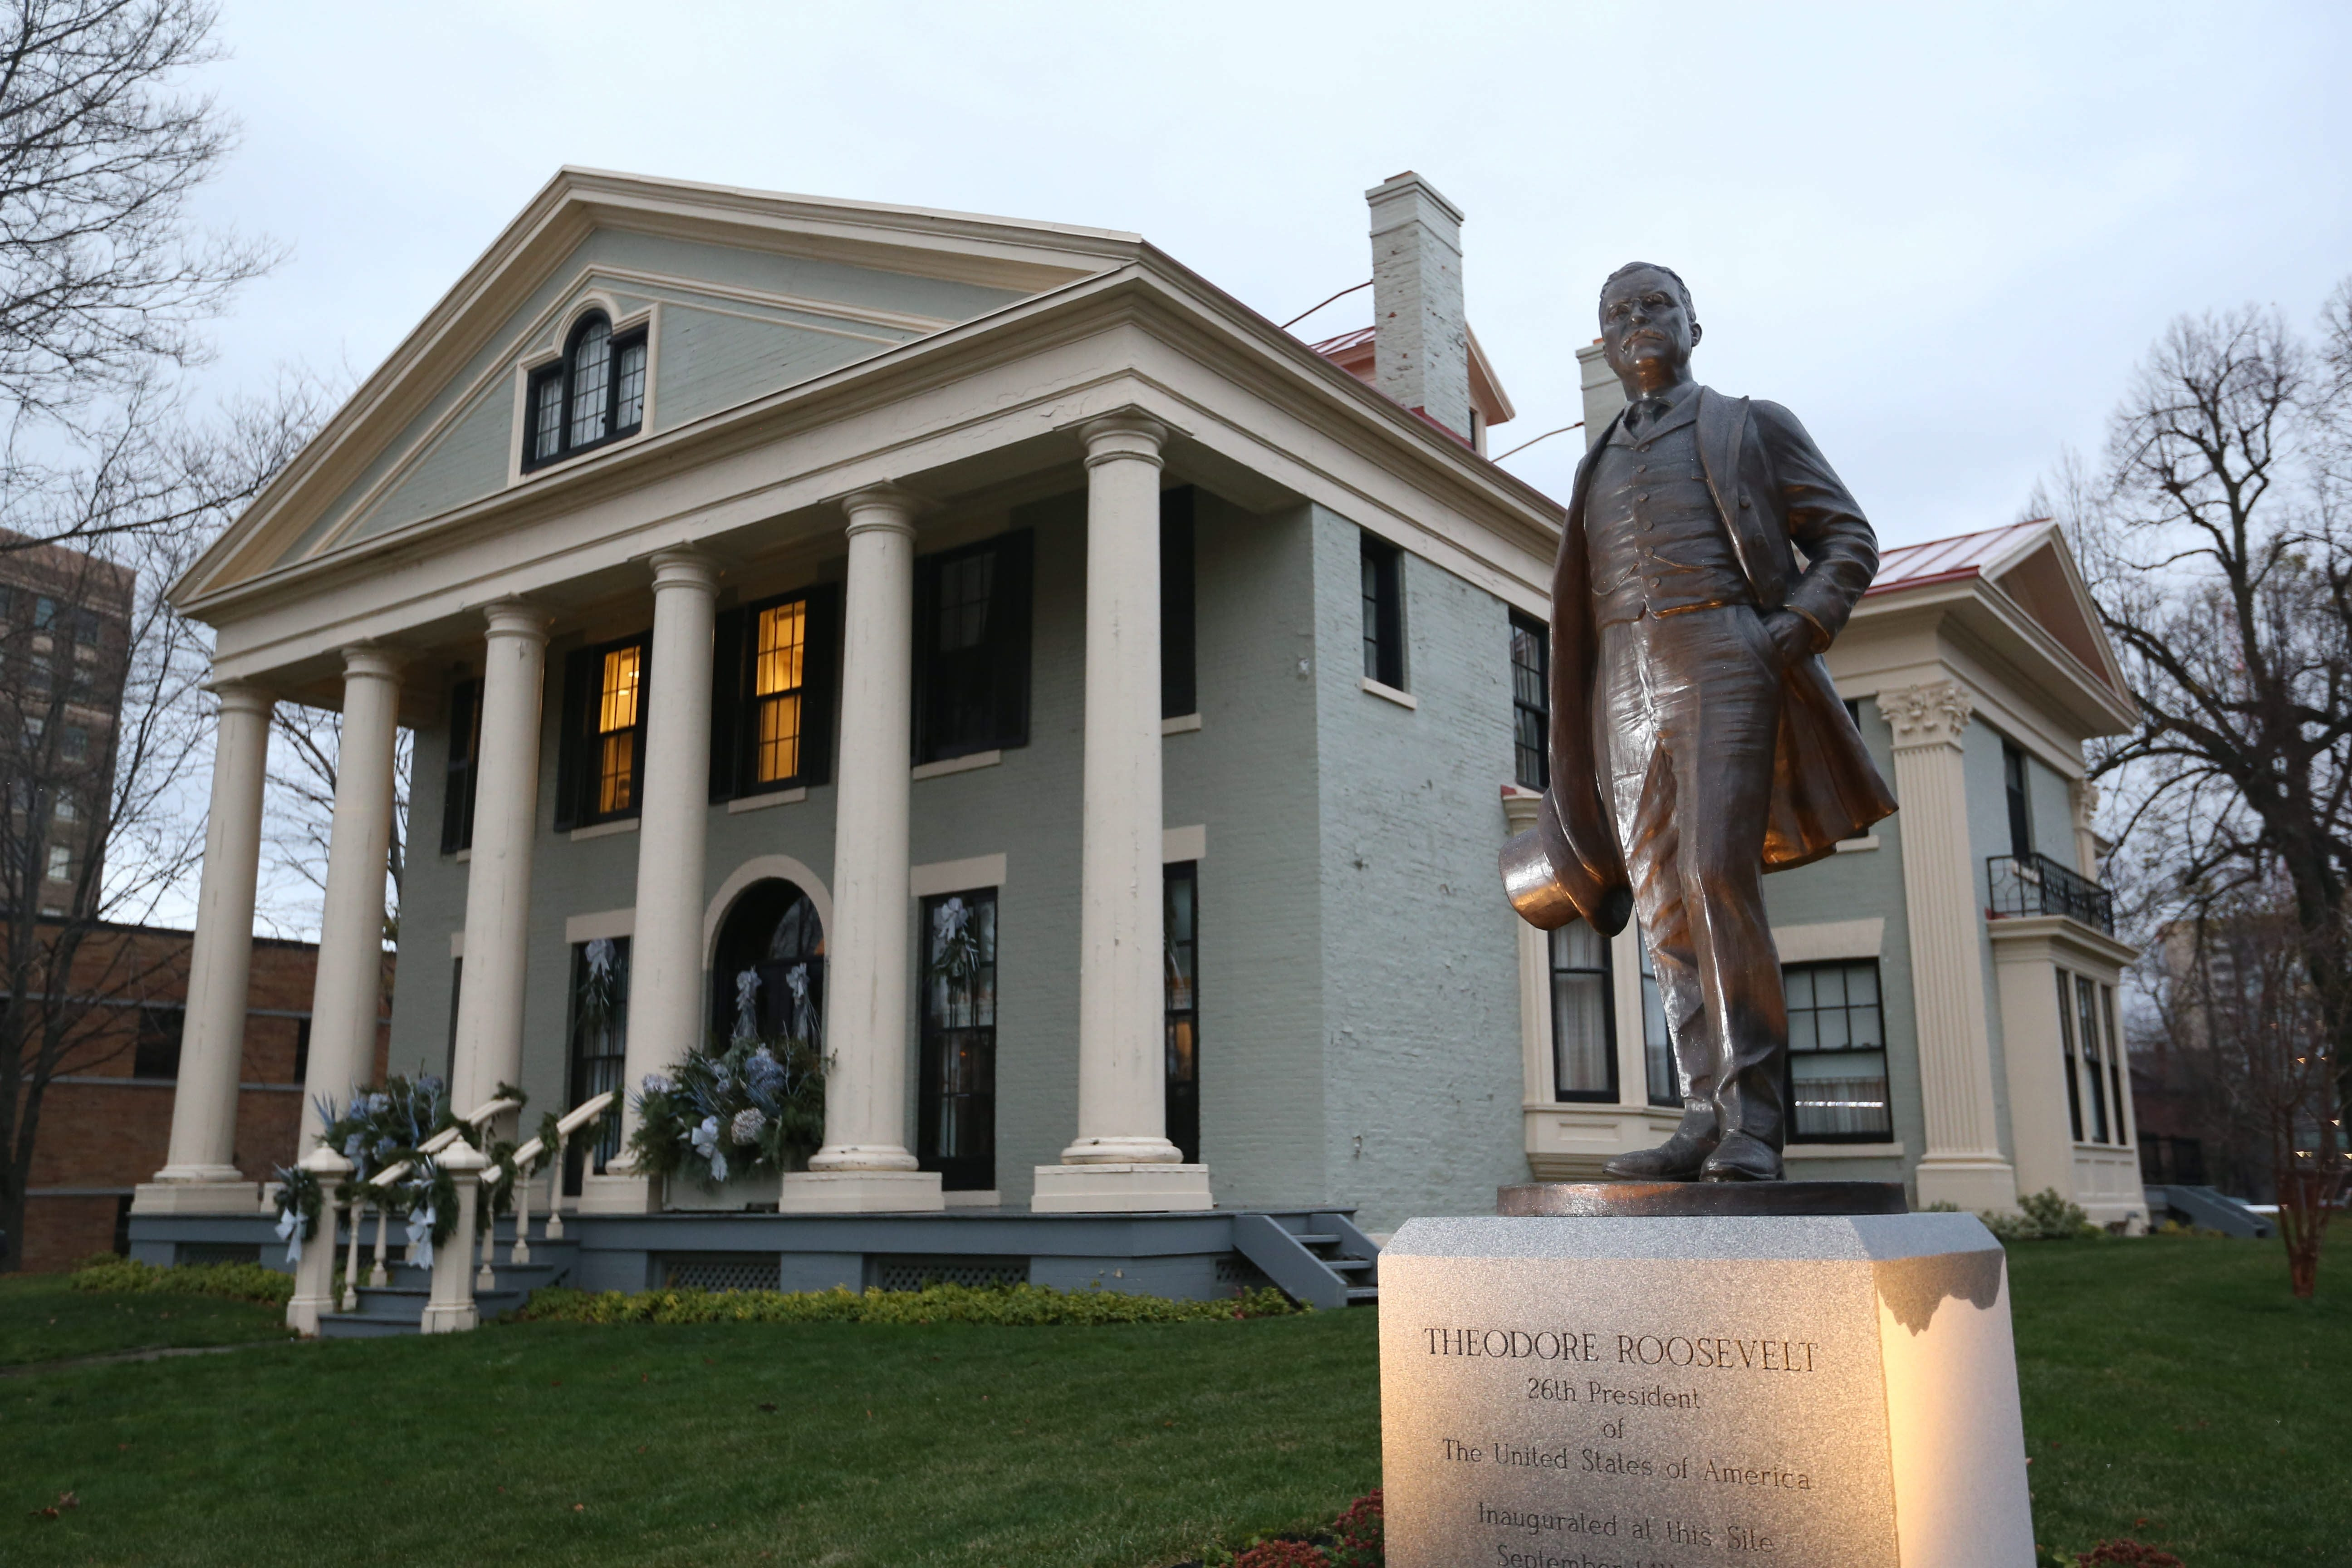 100 Things - Pay a visit to the Theodore Roosevelt Inaugural Site